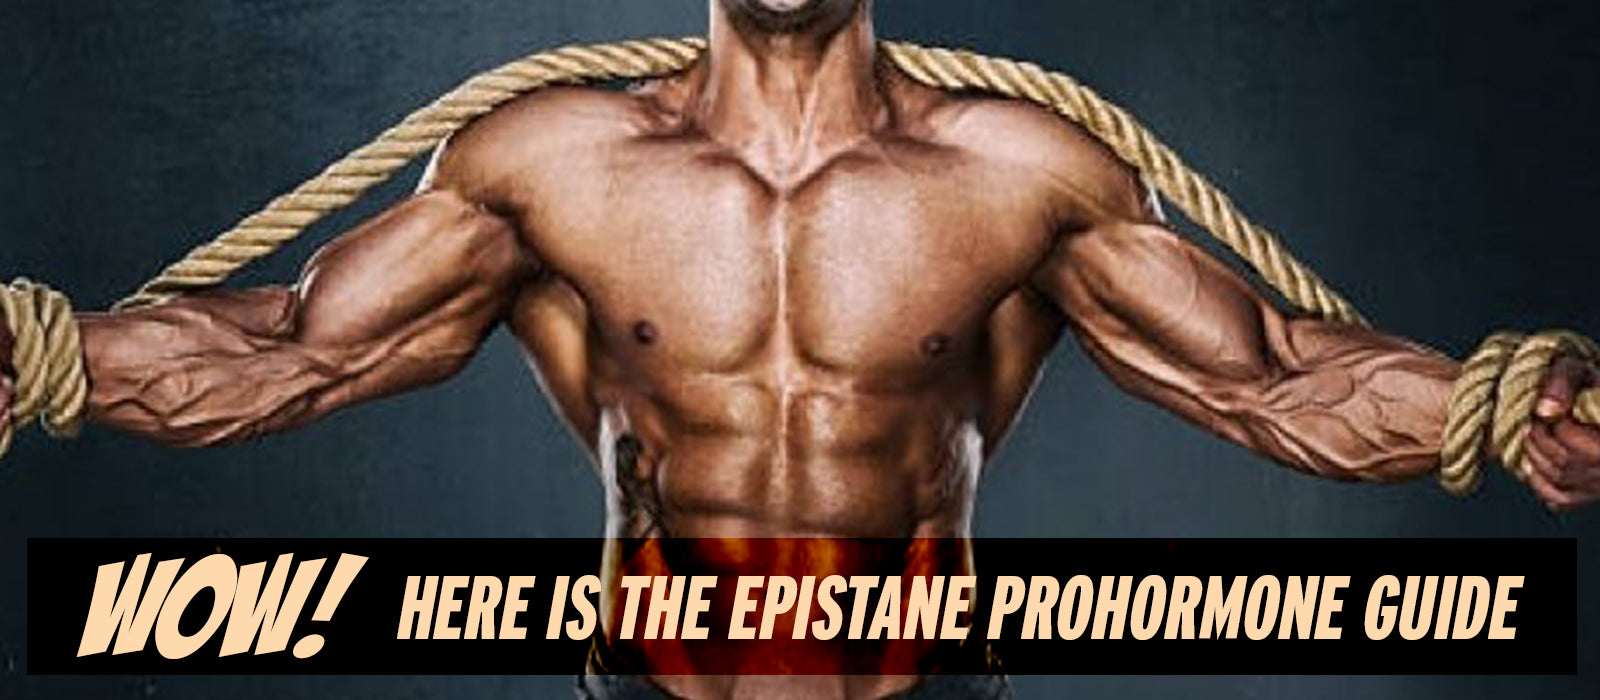 Wow! Here Is The Epistane Prohormone Guide